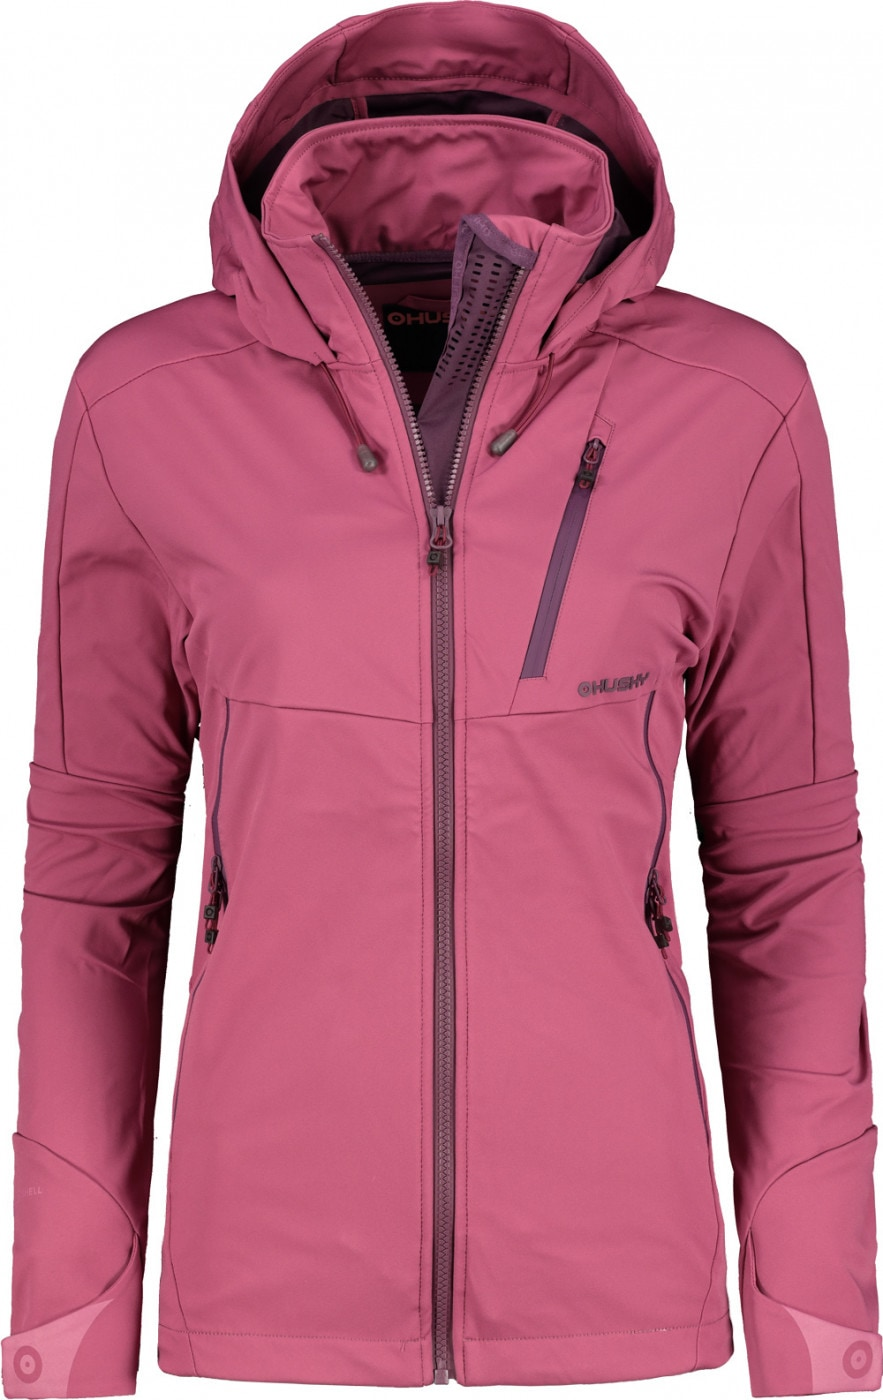 Women's softshell jacket HUSKY SAURI L